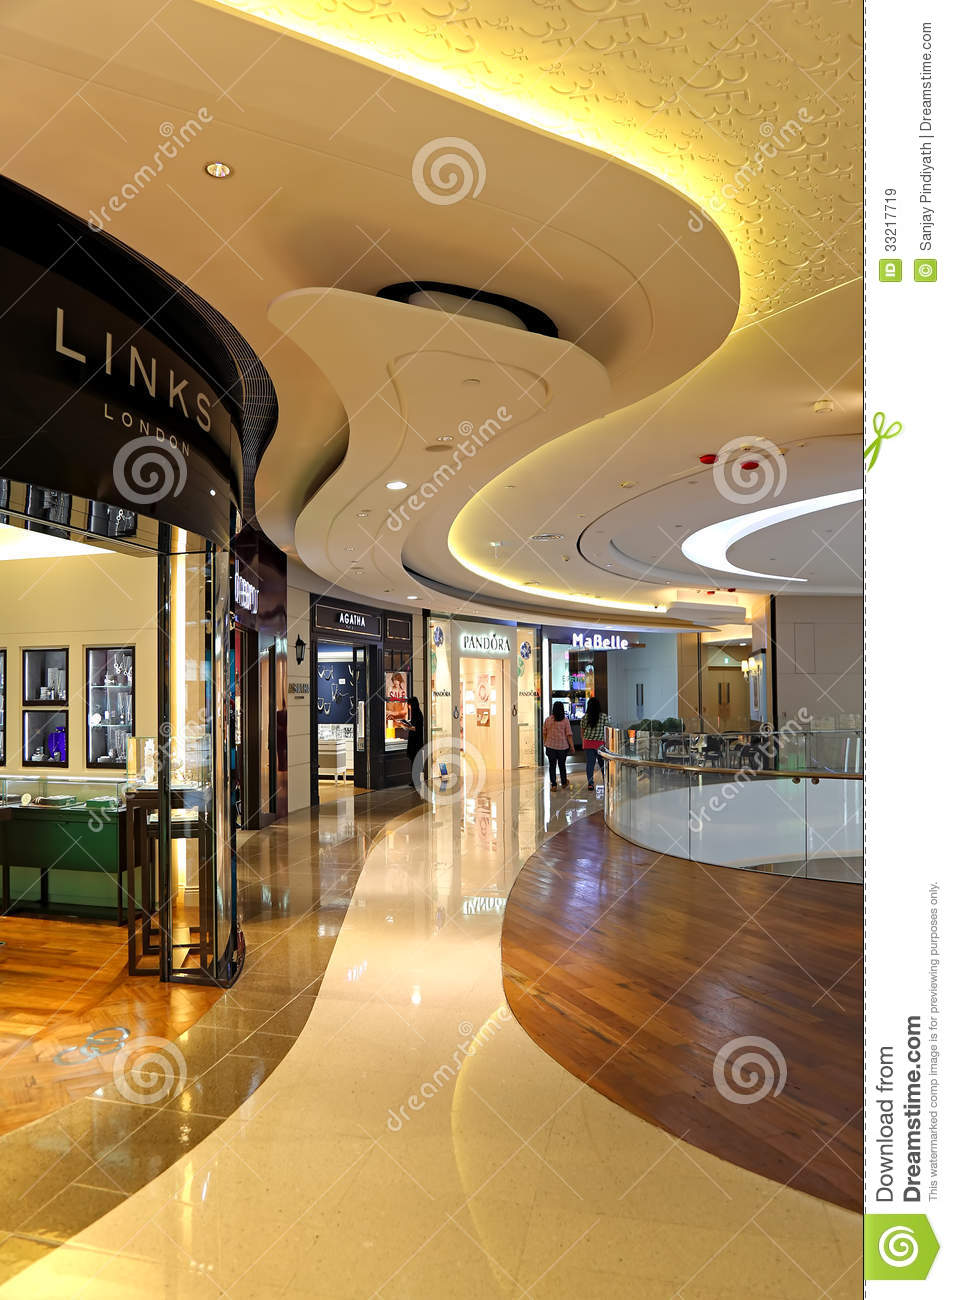 shopping mall interior editorial stock image image of mall 33217719